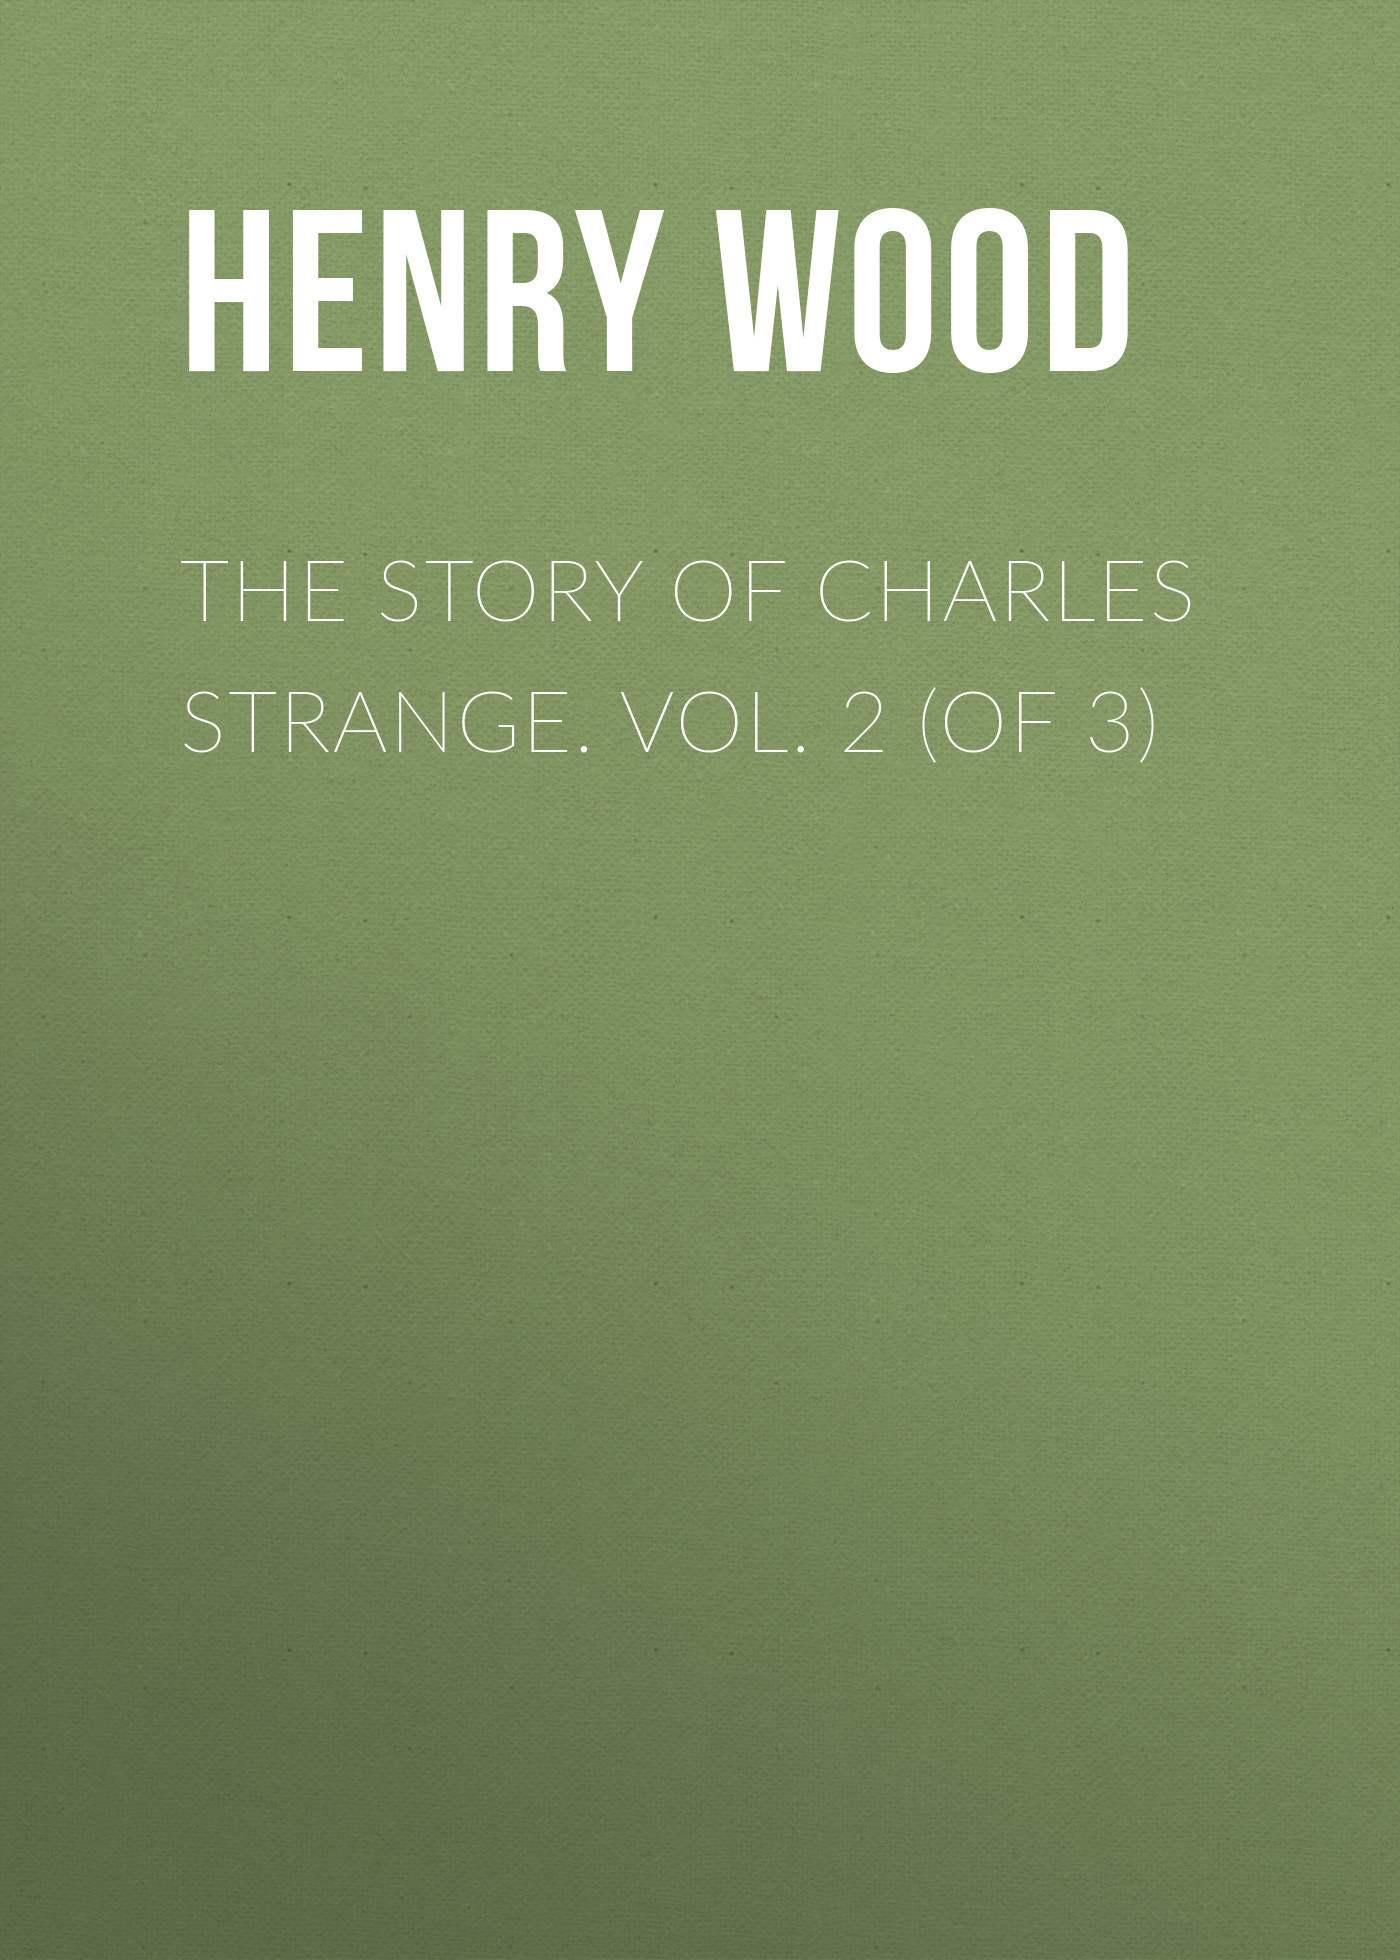 Henry Wood The Story of Charles Strange. Vol. 2 (of 3) excavating the story of charles edward